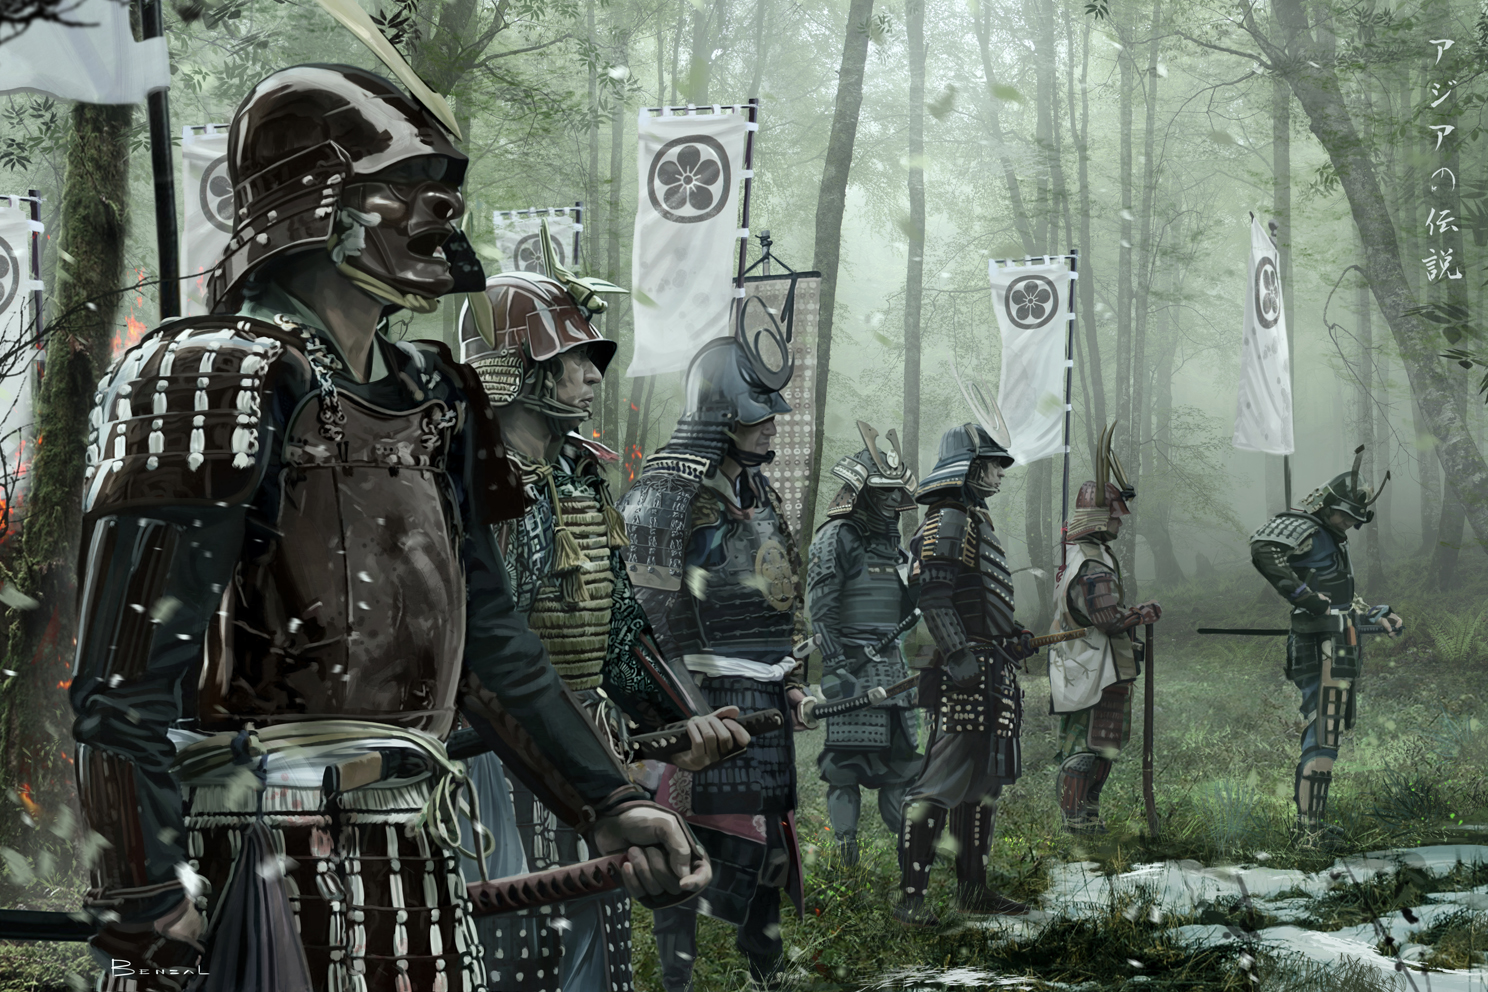 Samurais in the wood